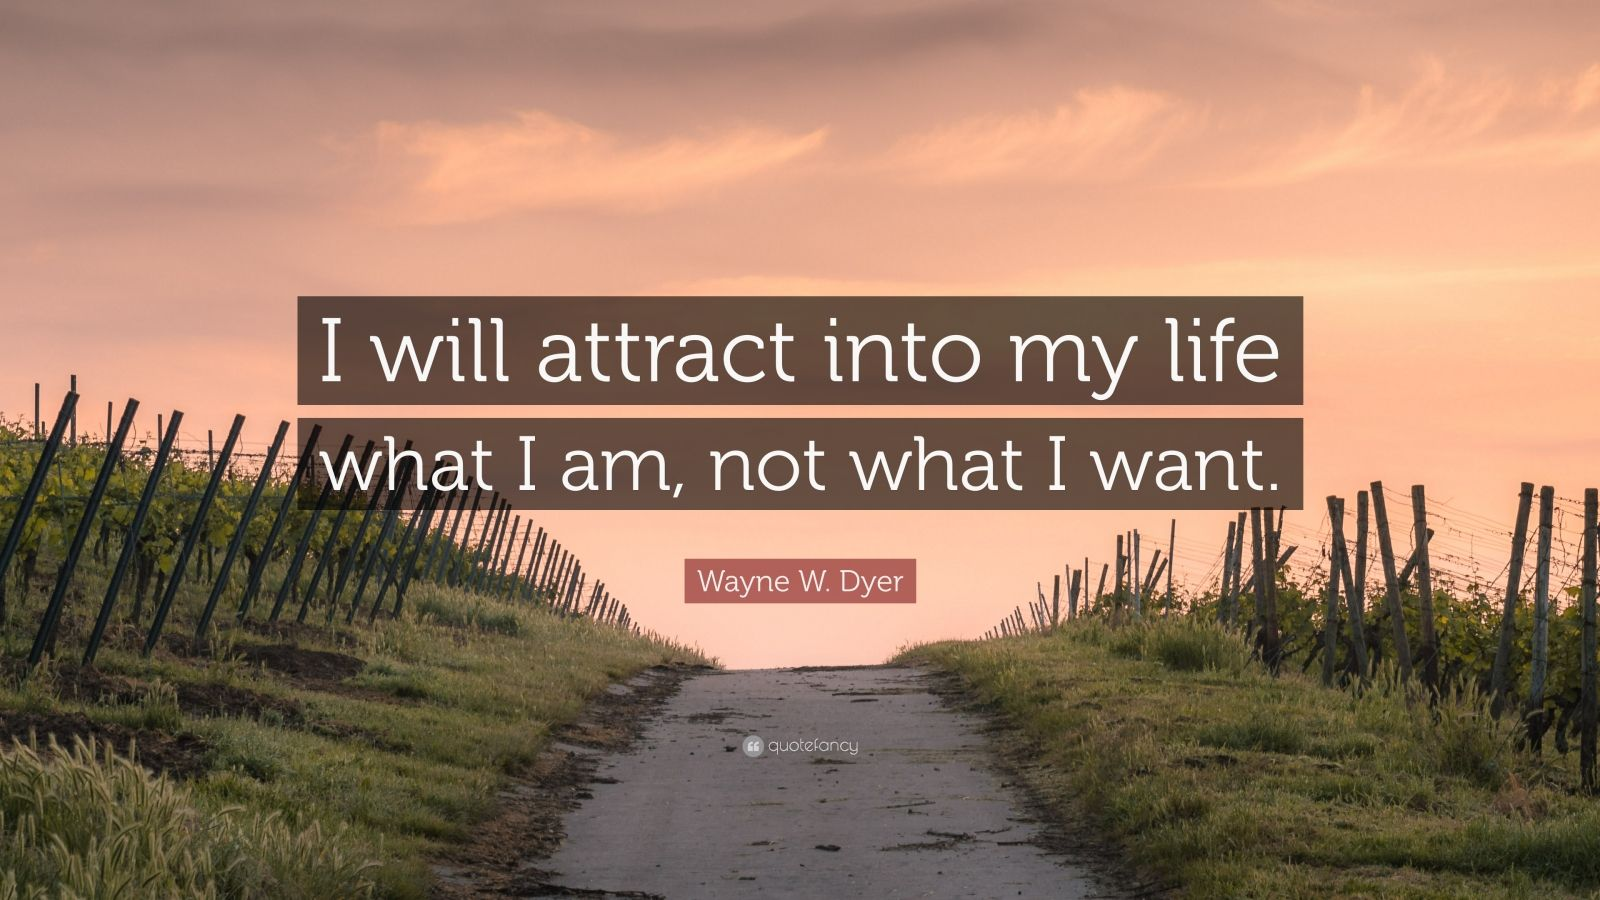 """Wayne W. Dyer Quote: """"I will attract into my life what I am, not what I want."""""""